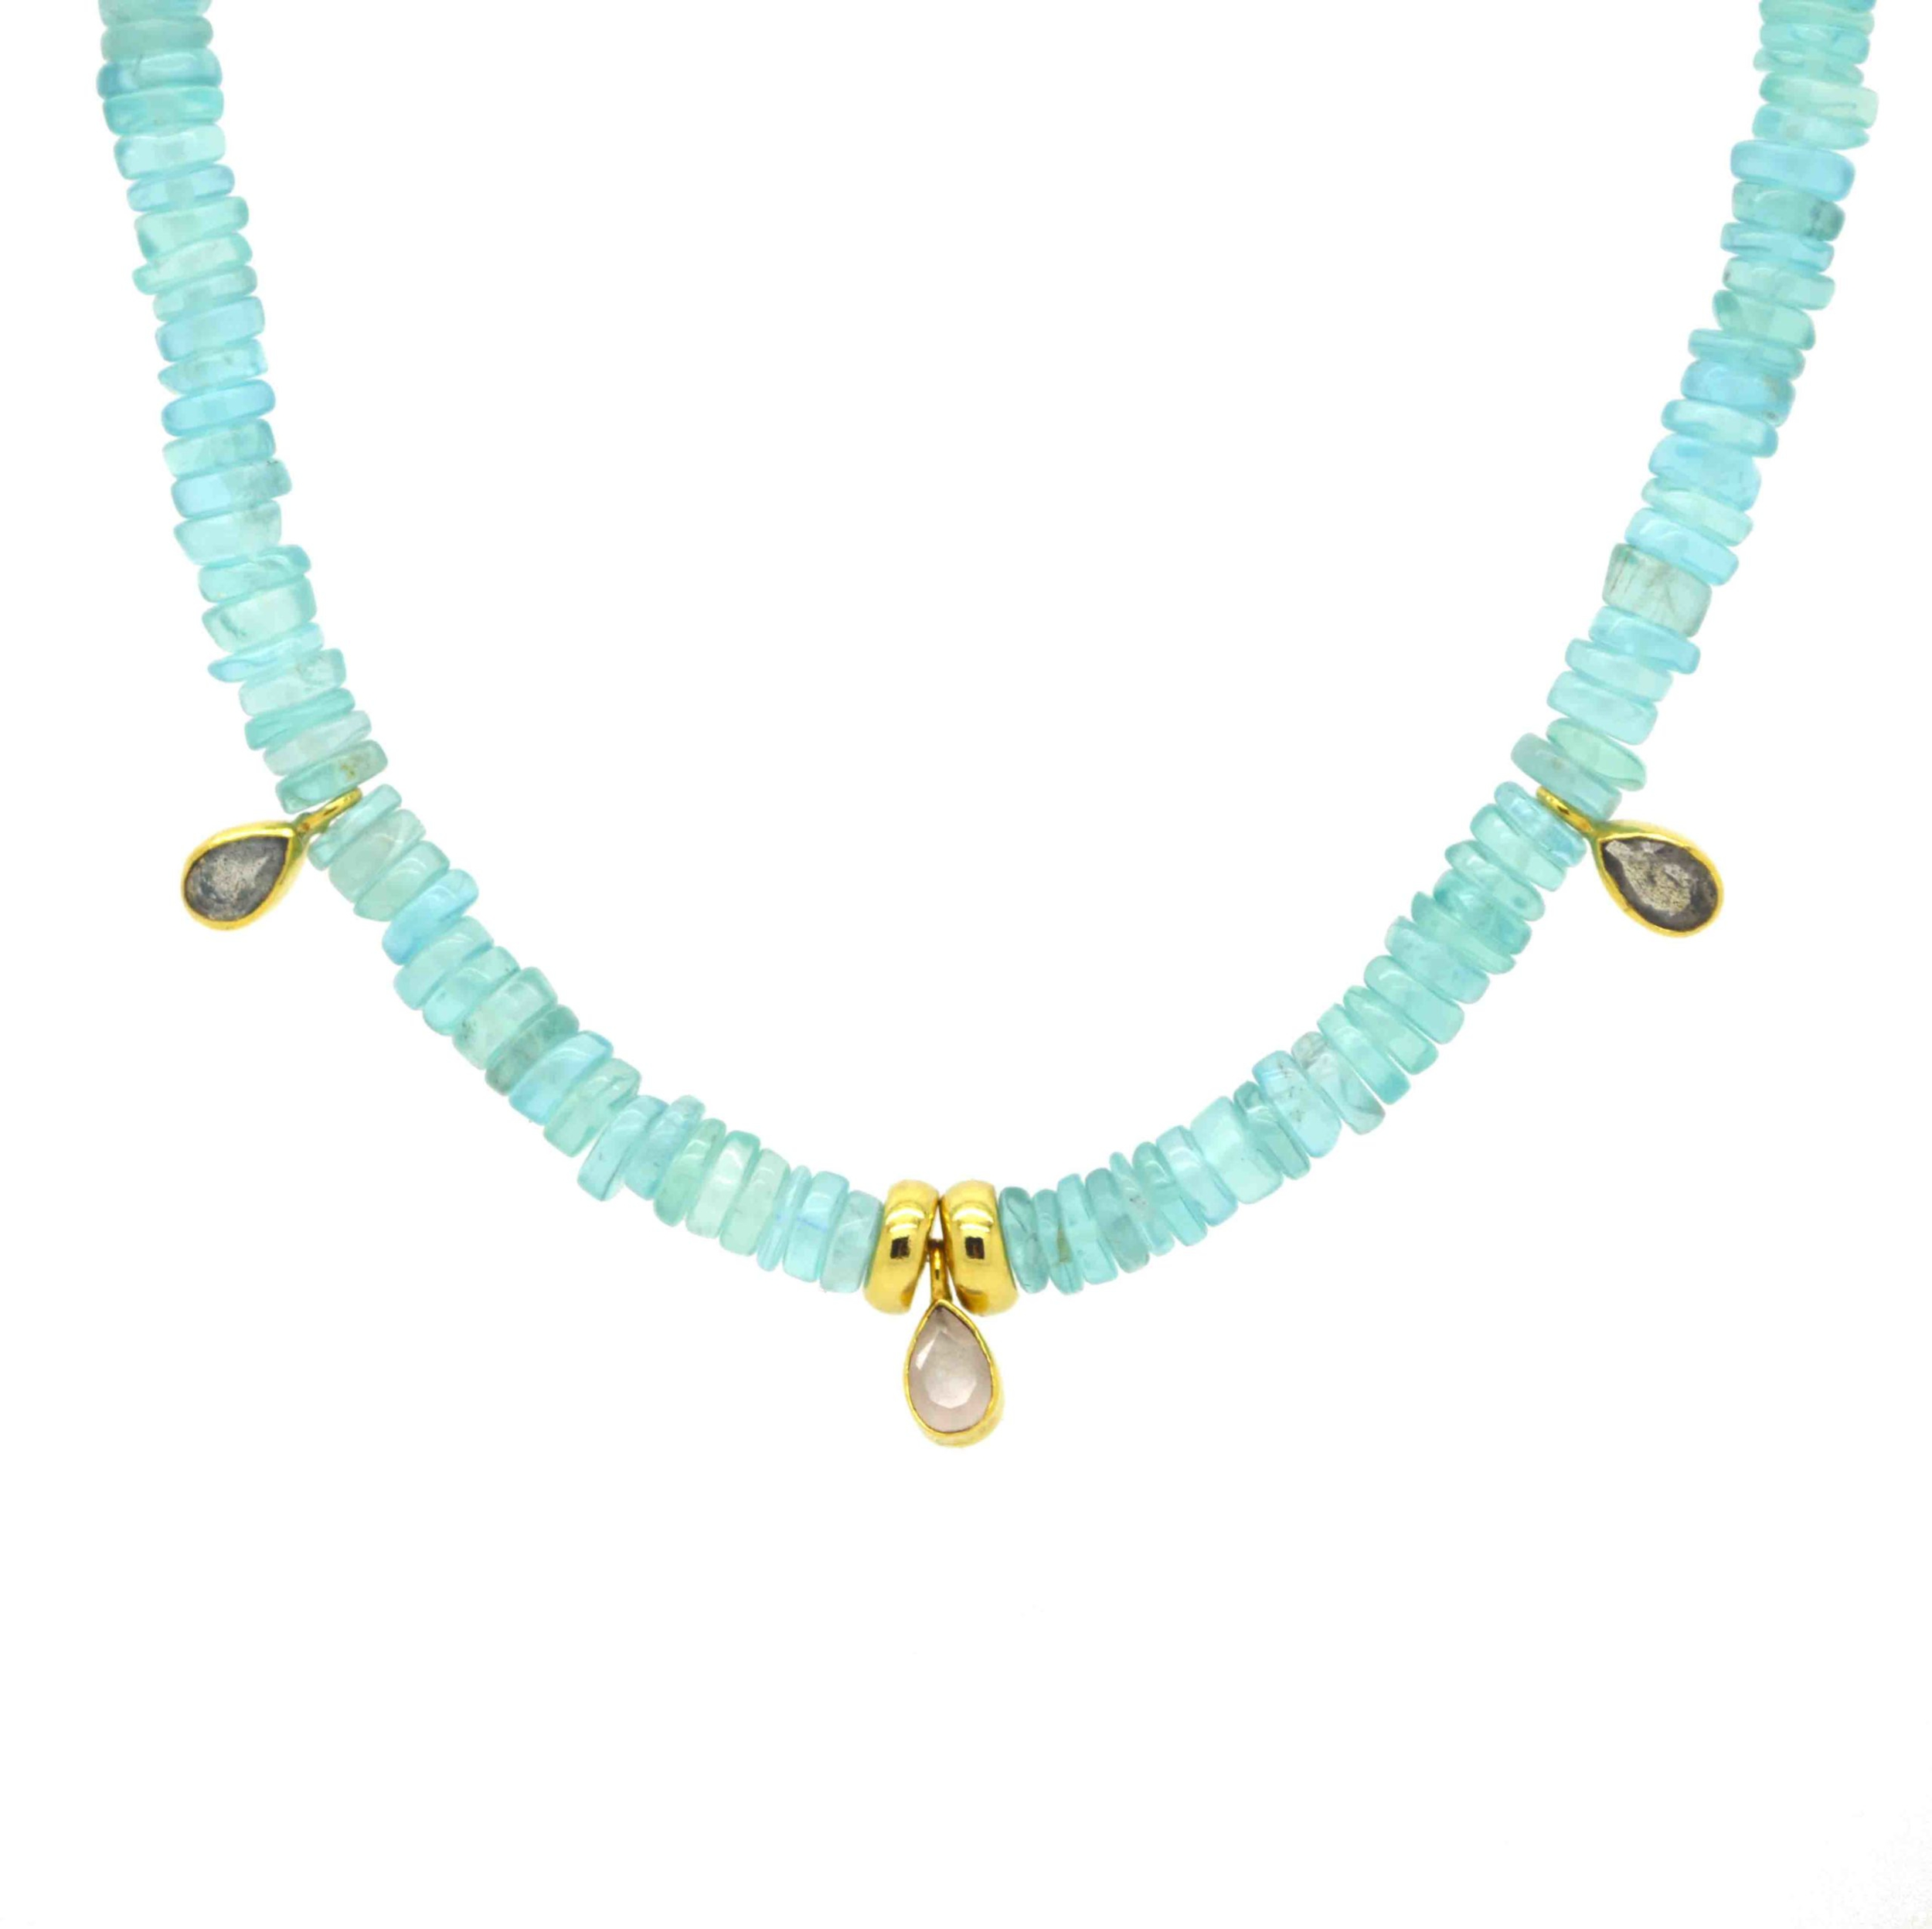 COLLIER_MIDJI_TURQUOISE